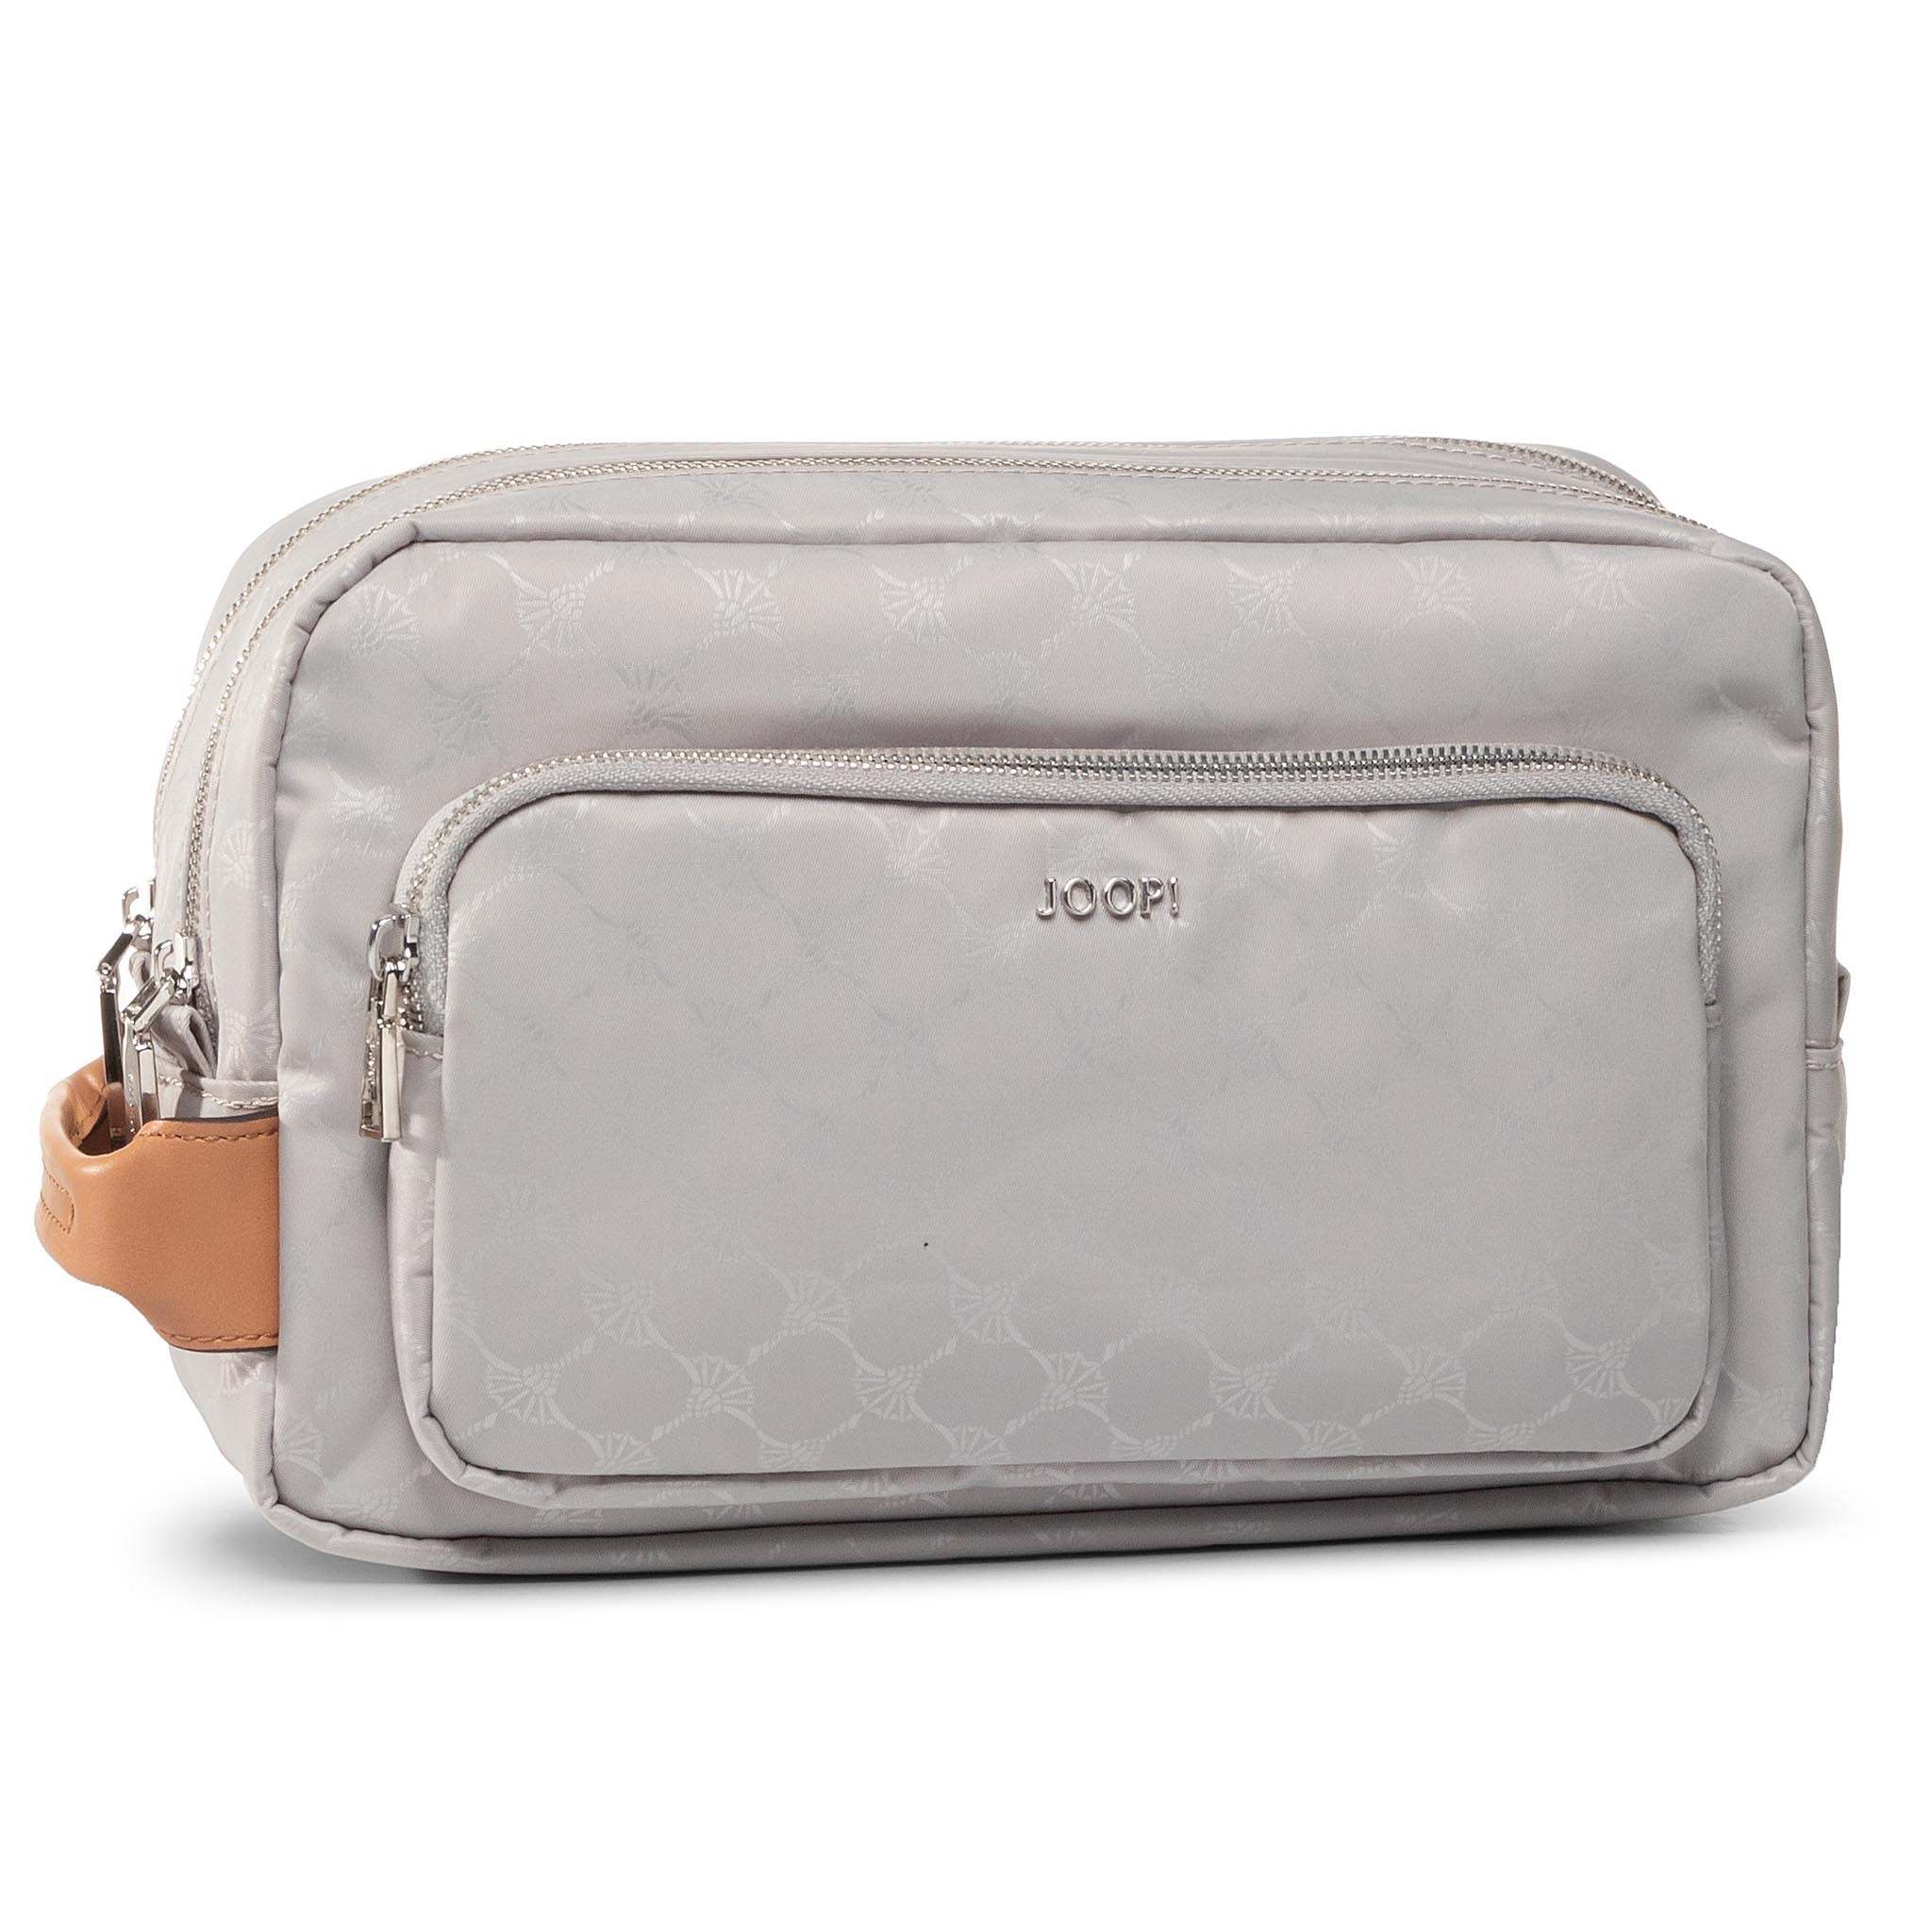 Geantă Pentru Cosmetice Joop! - Molly Washbag 4140004771 Light Grey 801 imagine epantofi.ro 2021